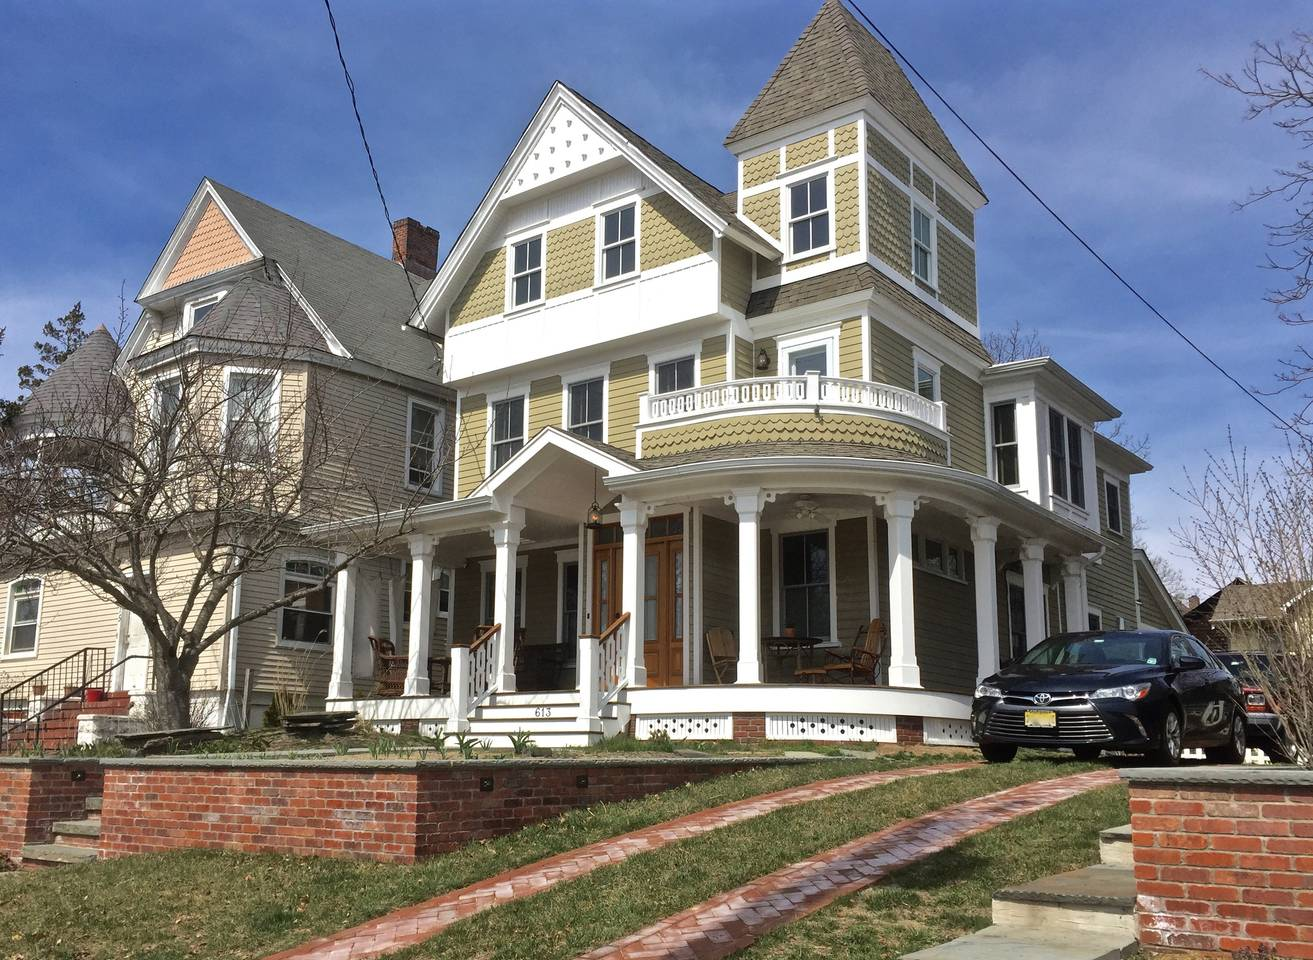 We Found The 8 Best Airbnb Homes In Asbury Park New Jersey